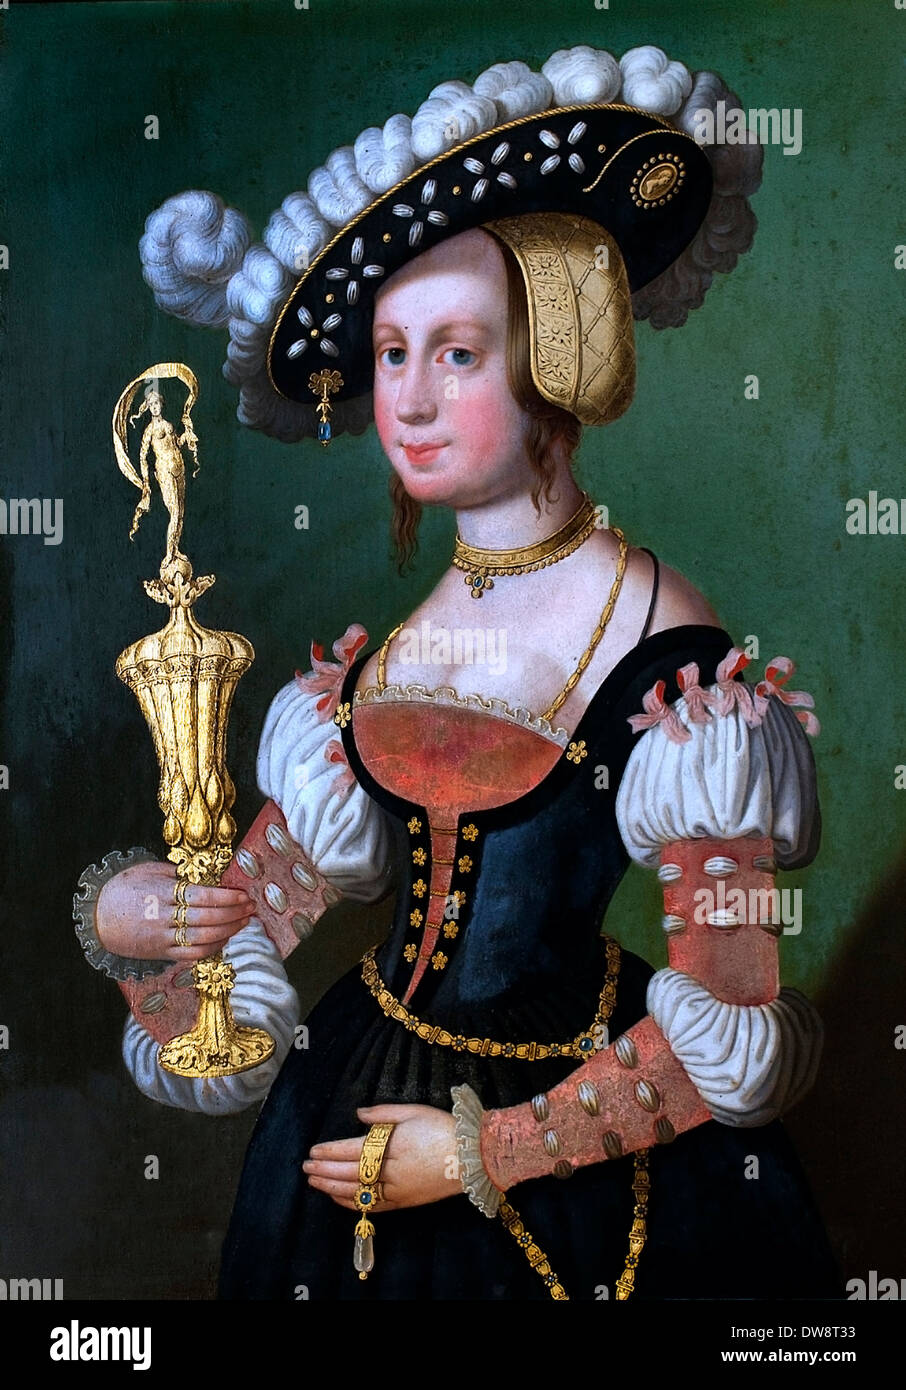 Dame mit Kelch - Lady with Chalice 16 century German Germany - Stock Image